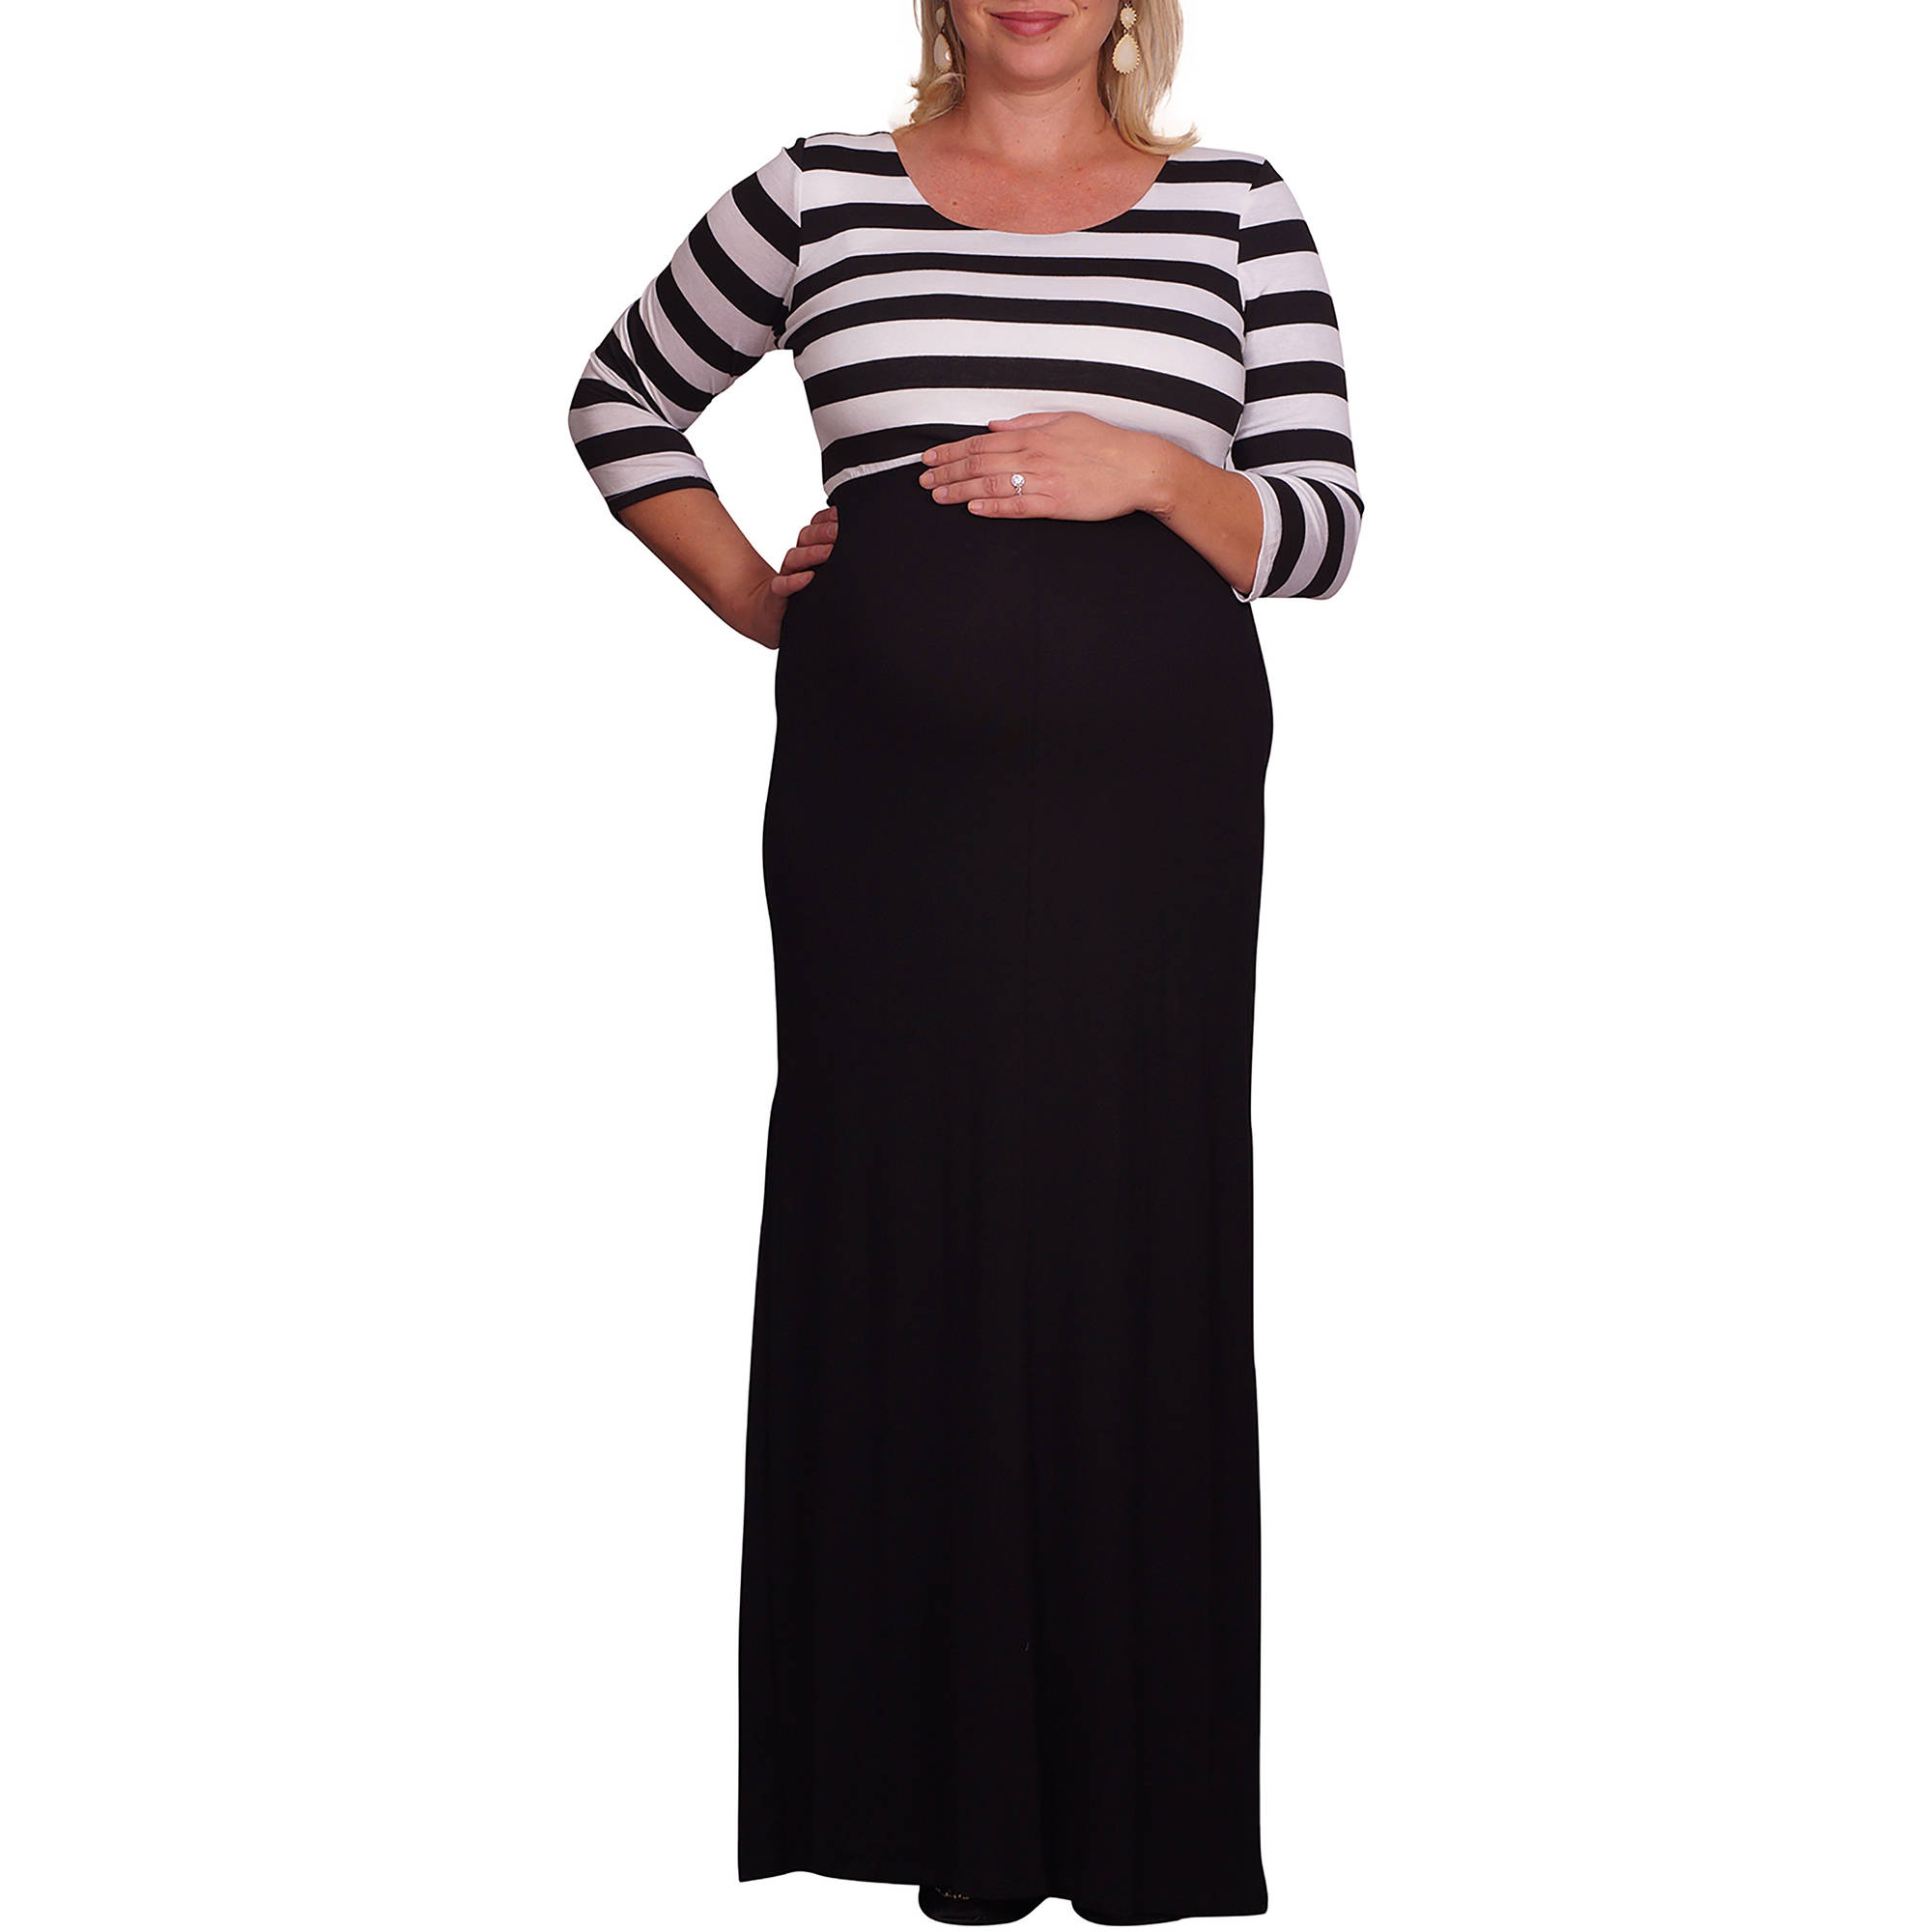 Mommylicious Maternity Color Blocked Striped Plus Maternity Maxi